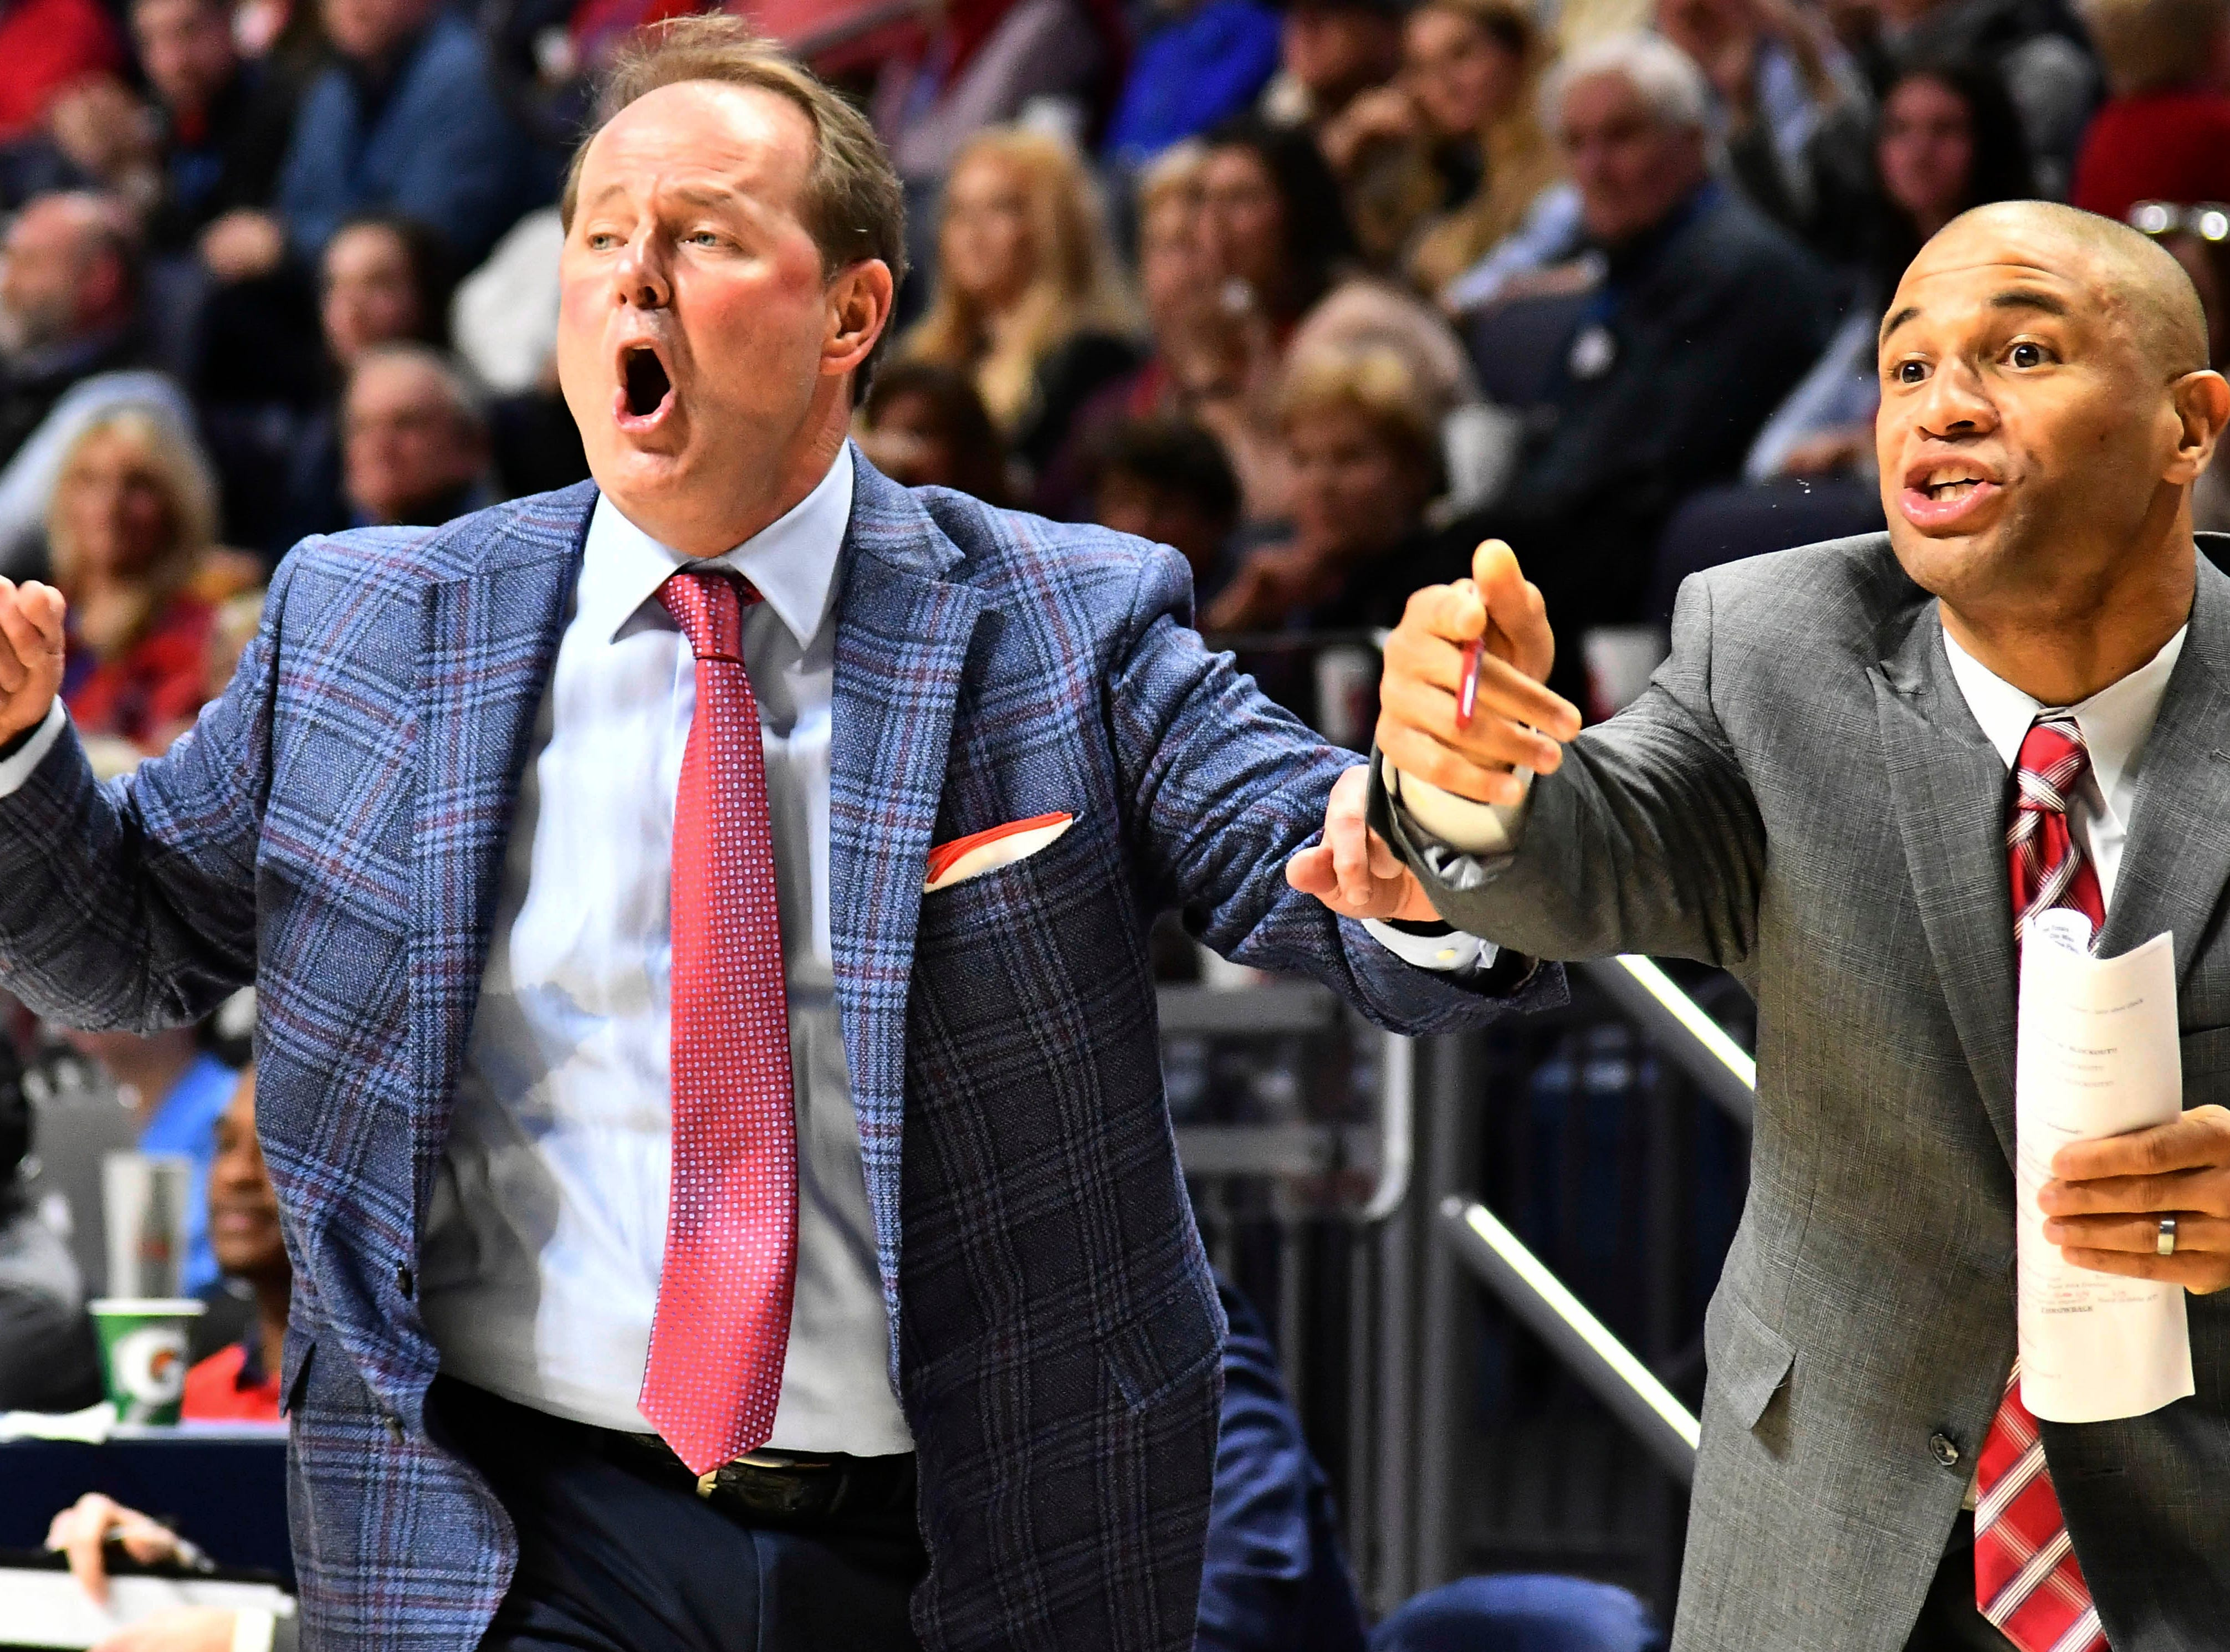 Jan 9, 2019; Oxford, MS, USA; Mississippi Rebels head coach Kermit Davis reacts after a play during the first quarter of the game against the Auburn Tigers at The Pavilion at Ole Miss. Mandatory Credit: Matt Bush-USA TODAY Sports